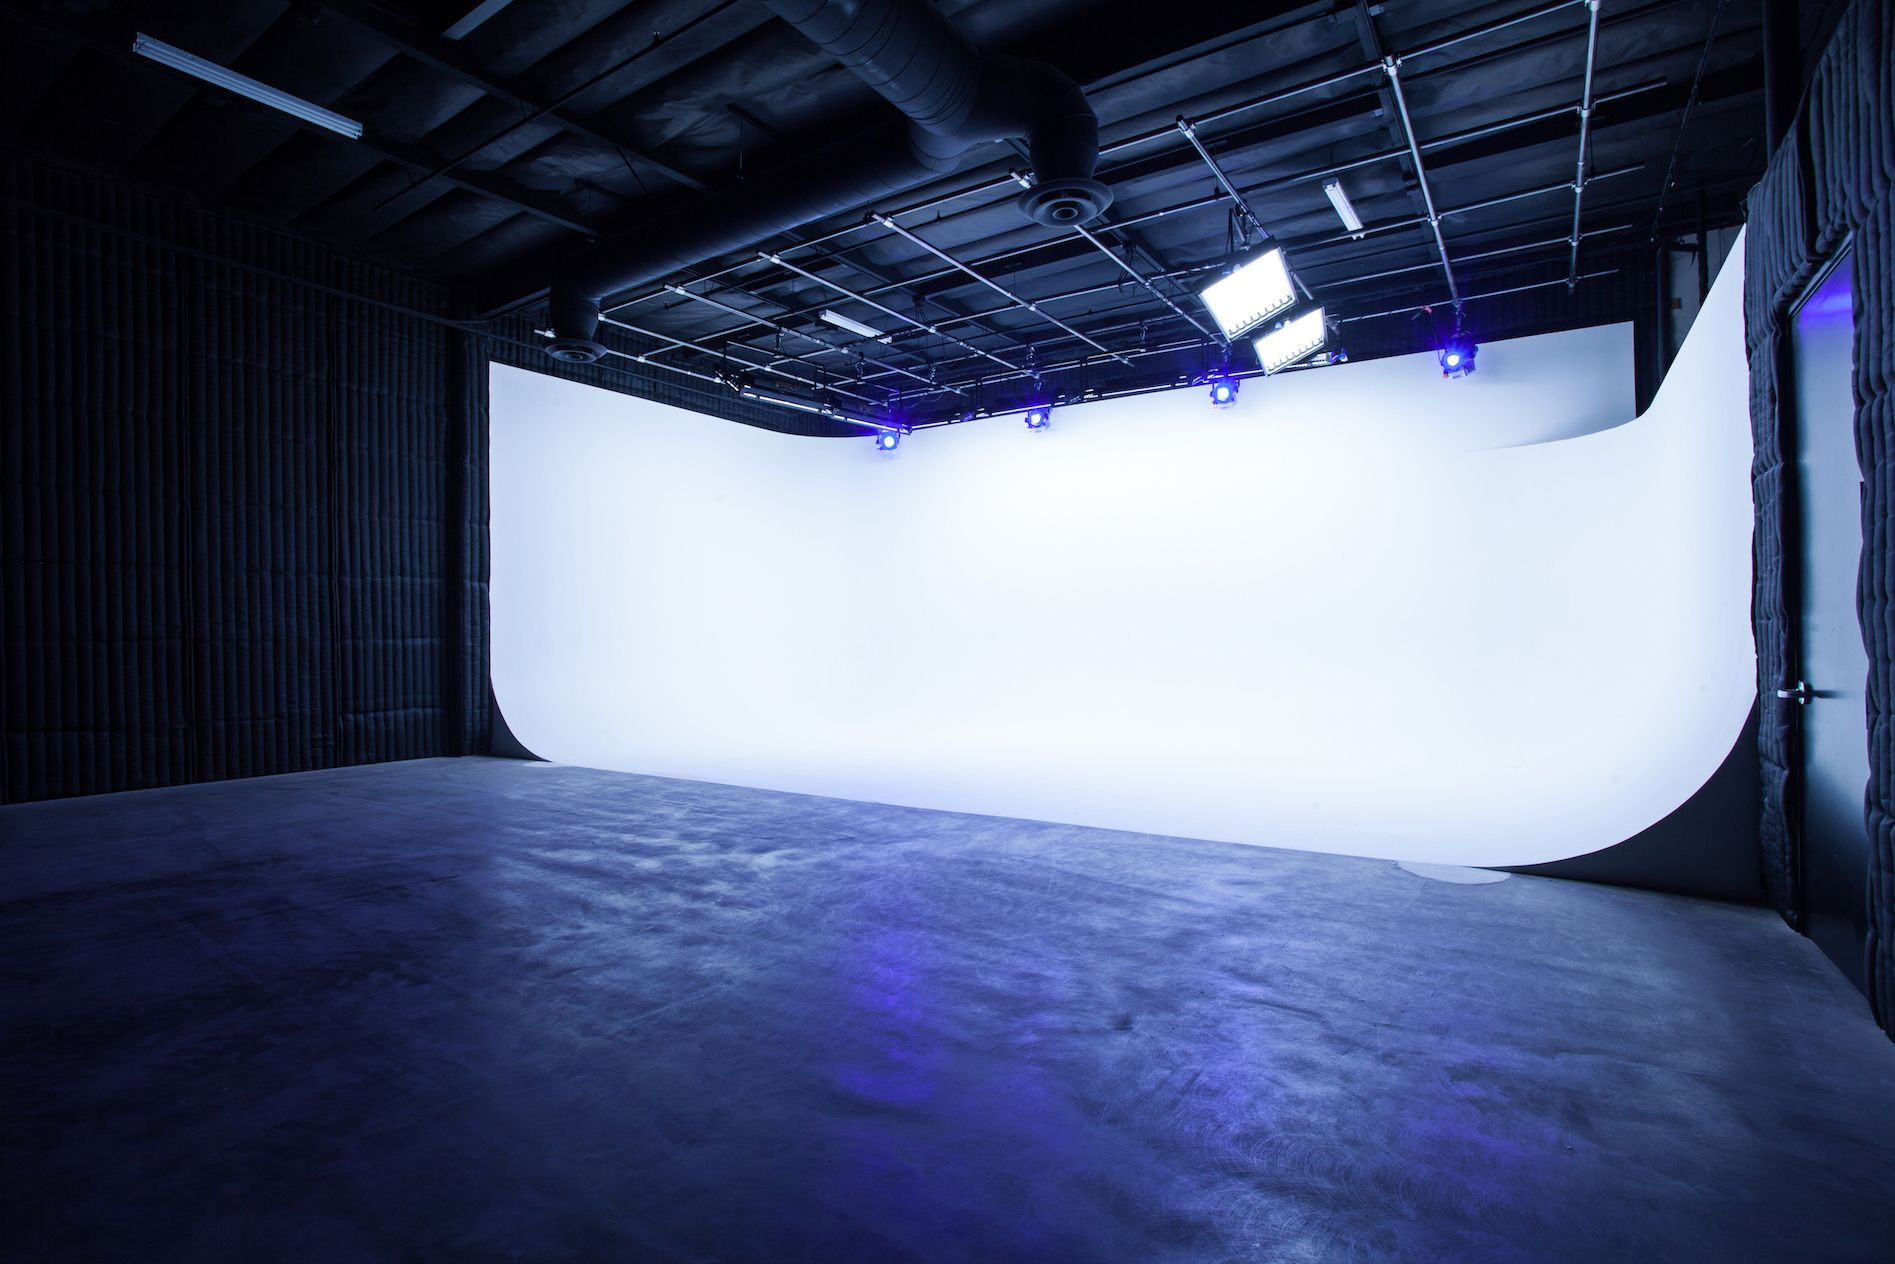 The Sound Stage at Hybrid Studios